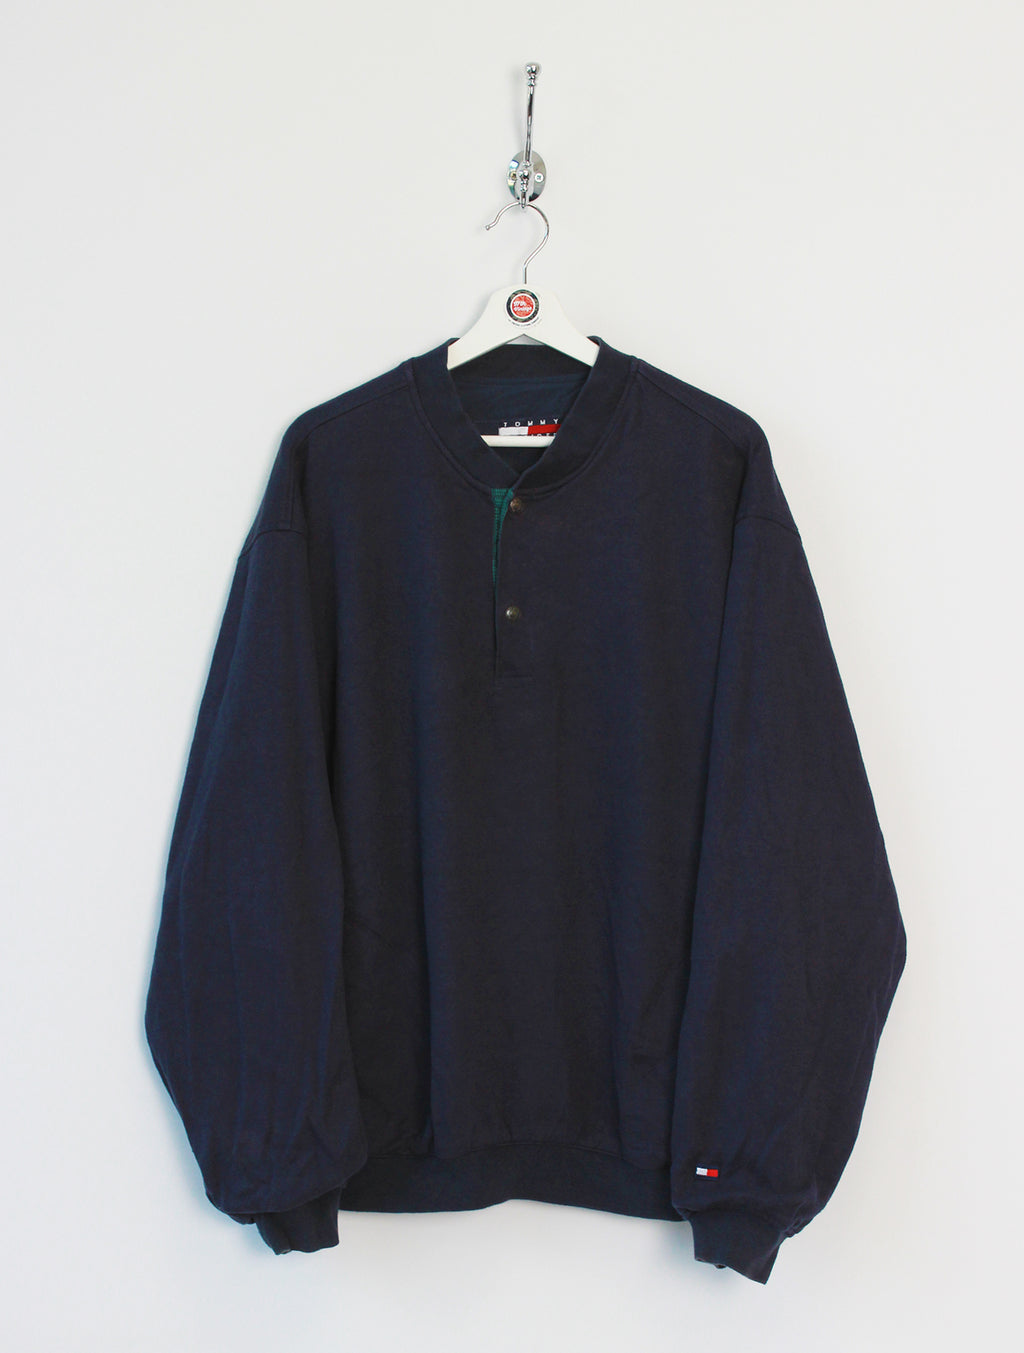 Tommy Hilfiger Reversible Pullover (XL)